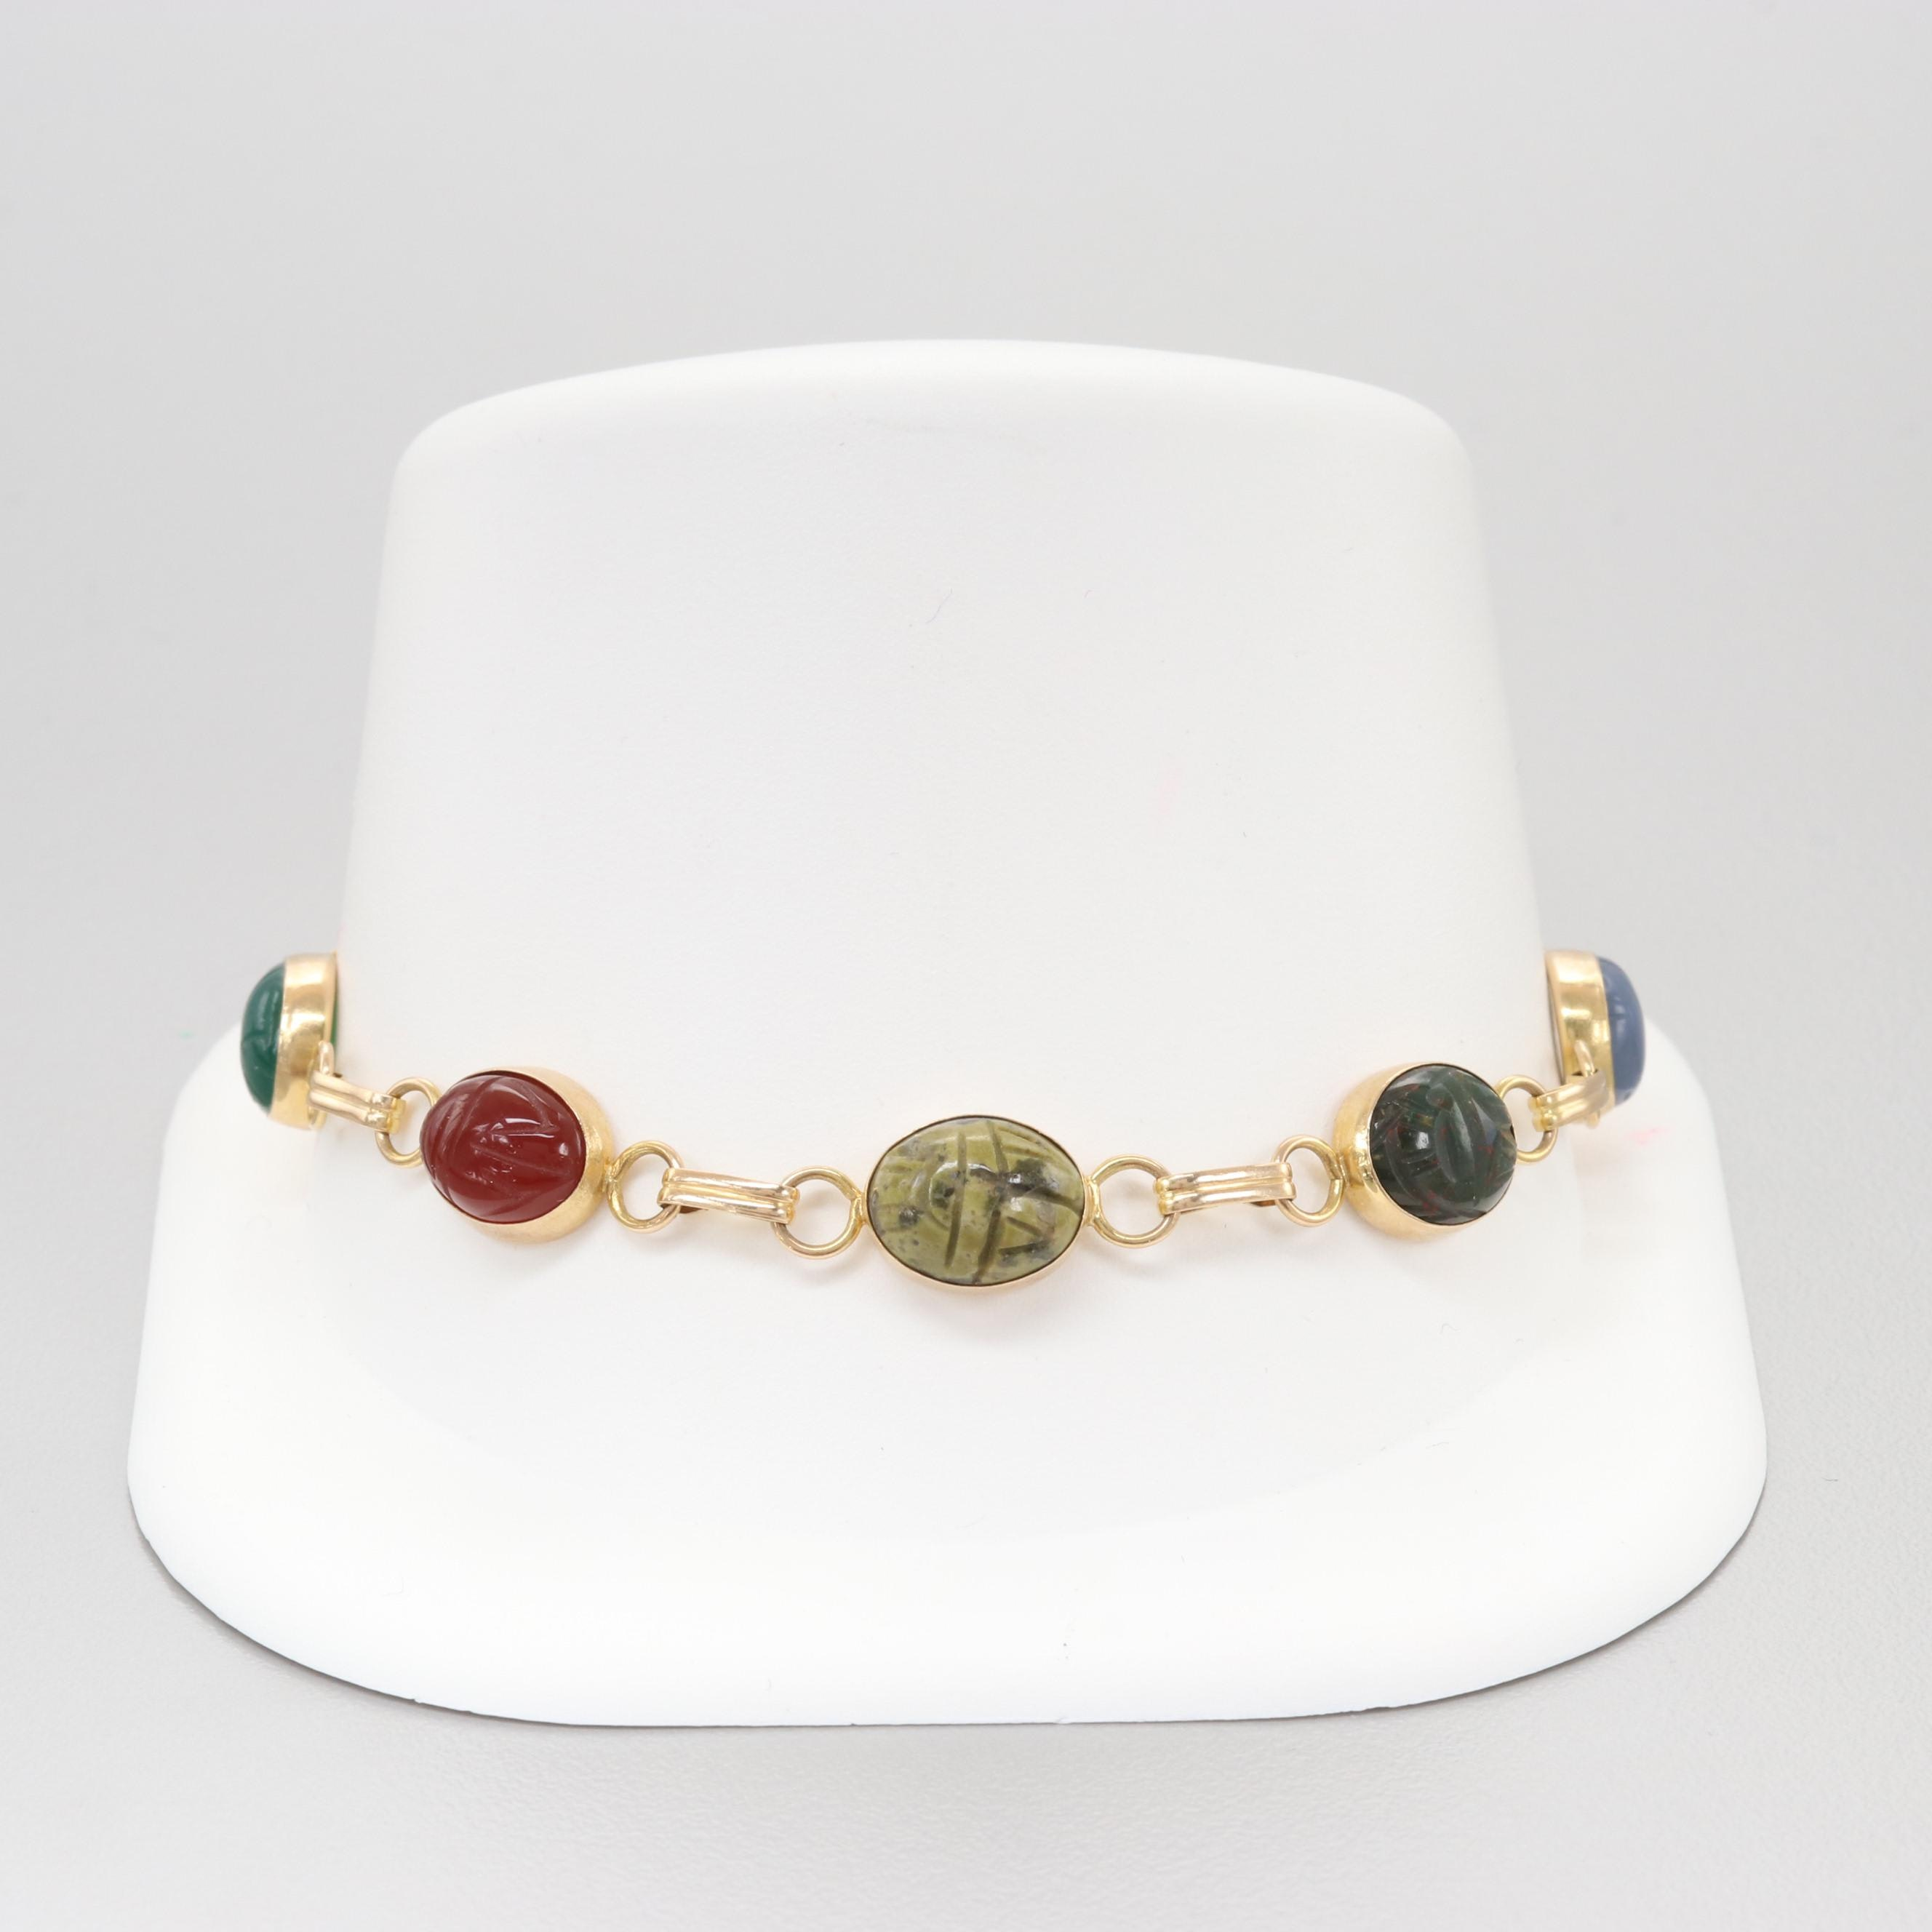 Vintage 14K Yellow Gold Scarab Bracelet with Quartz, Bloodstone, and Onyx